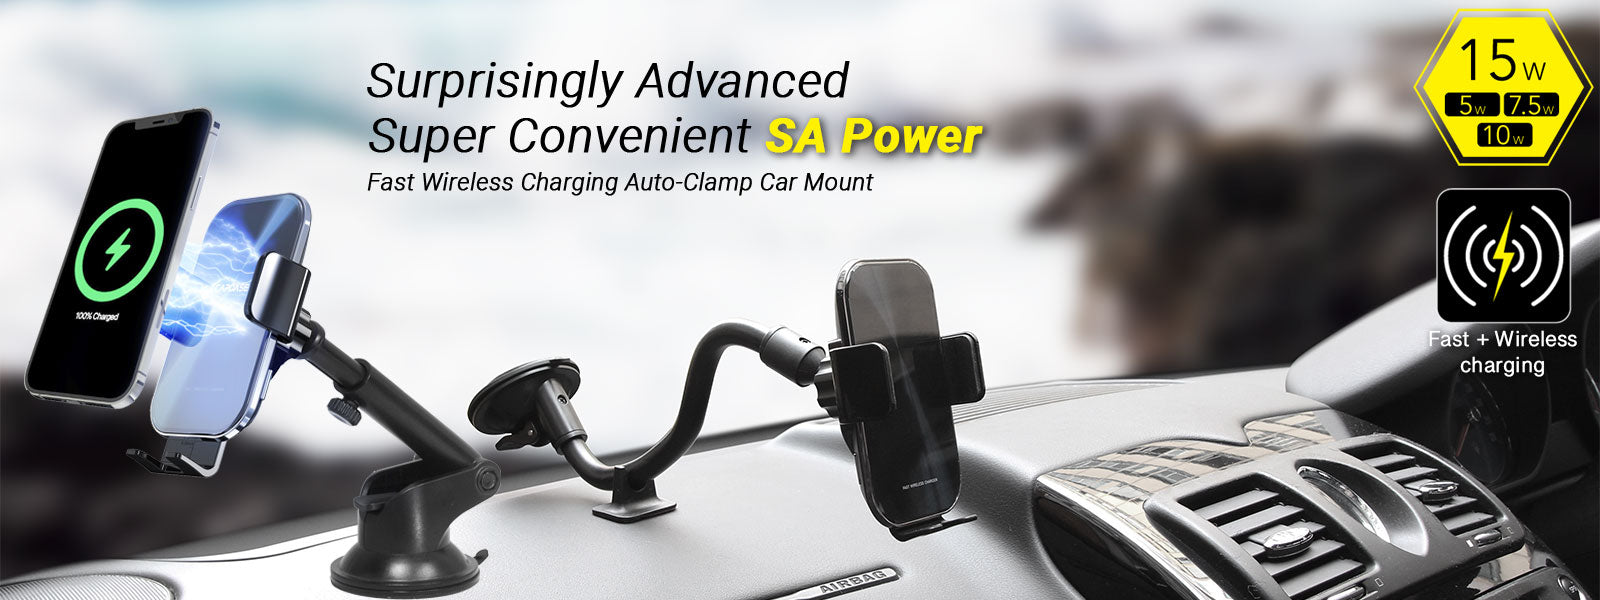 SA Power Fast Wireless Charging Auto-Clamp Car Mount